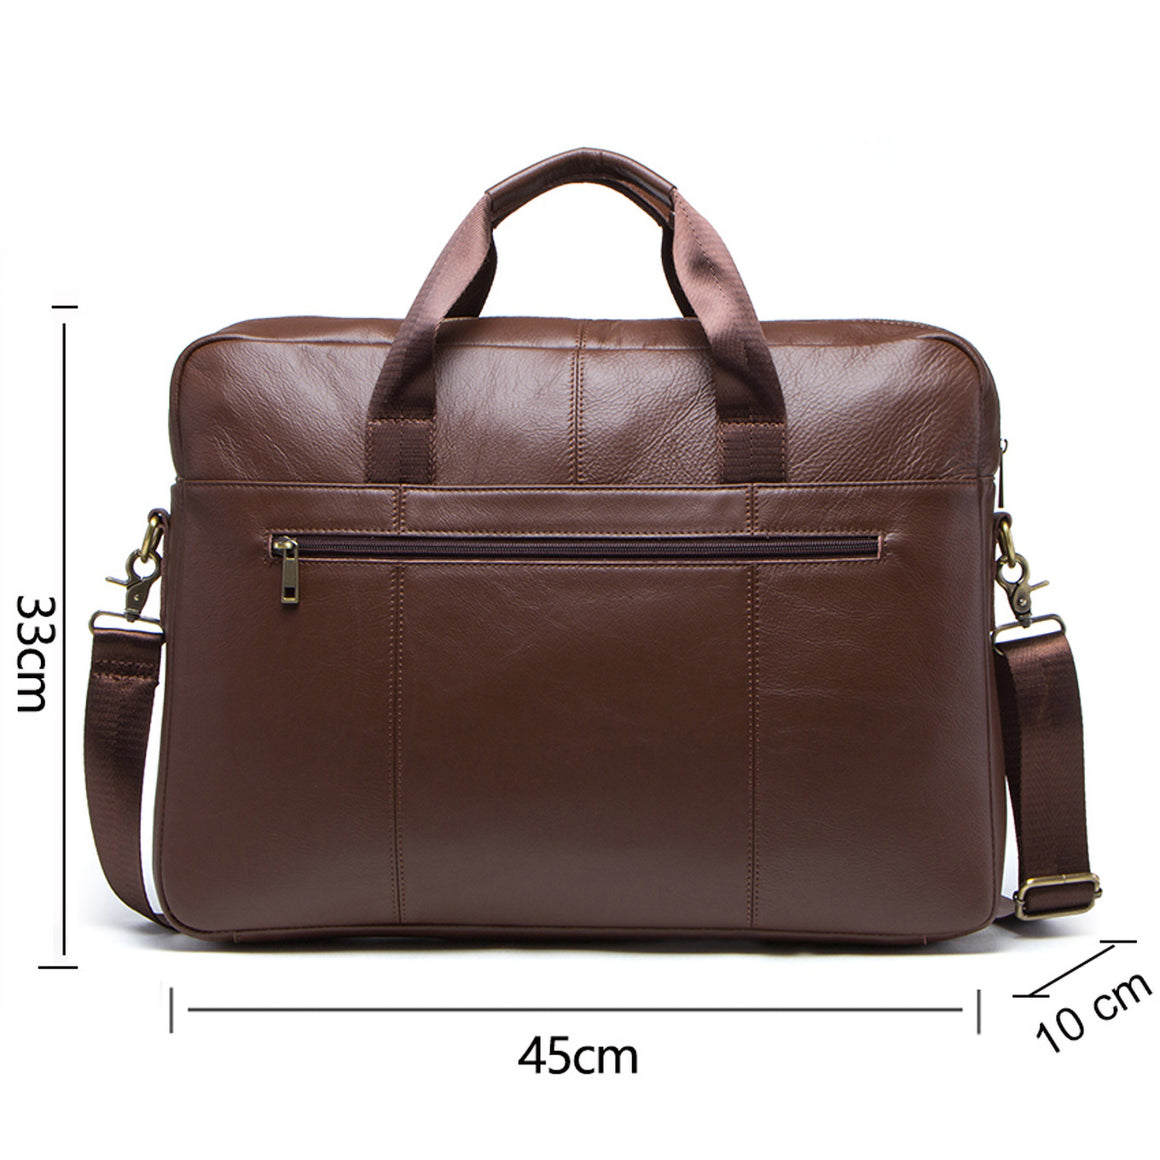 "CONTACT'S Genuine Leather Male Messenger Bag For 15.6"" Laptop Men's Crossbody Bags Large Business Shoulder Bag For Man Briefcase"